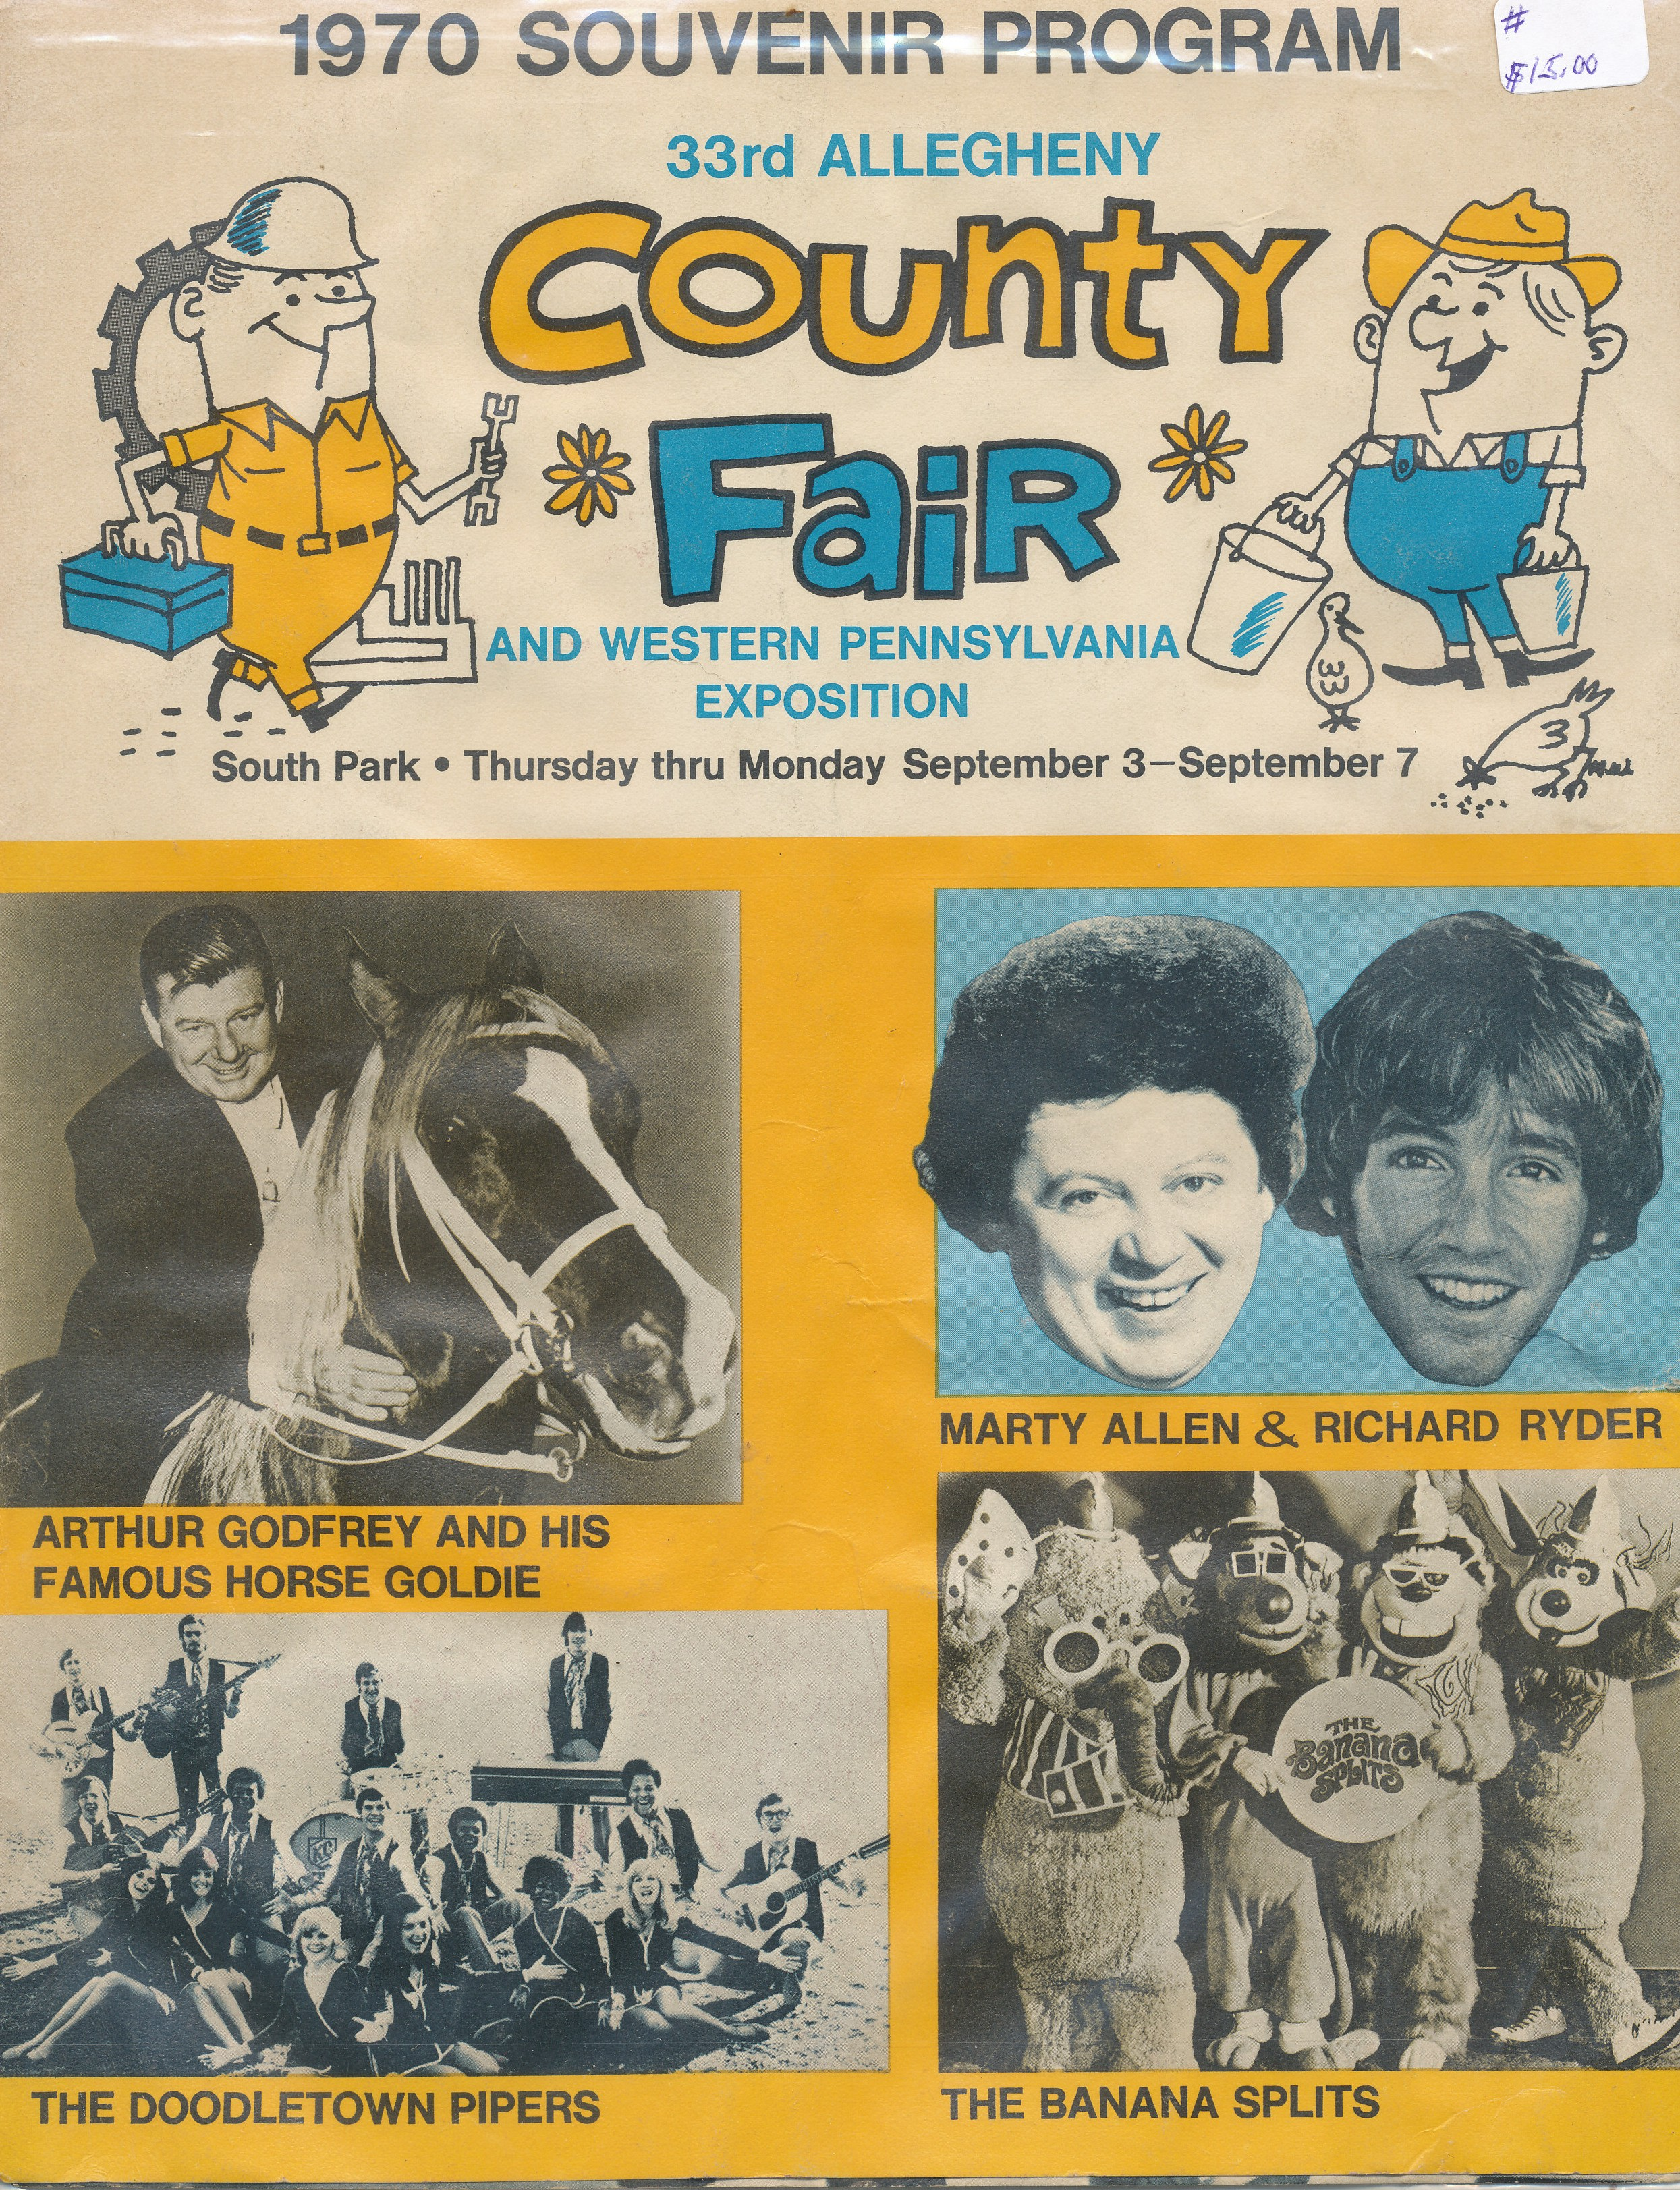 1970 33rd Allegheny County Fair Souvenir Program